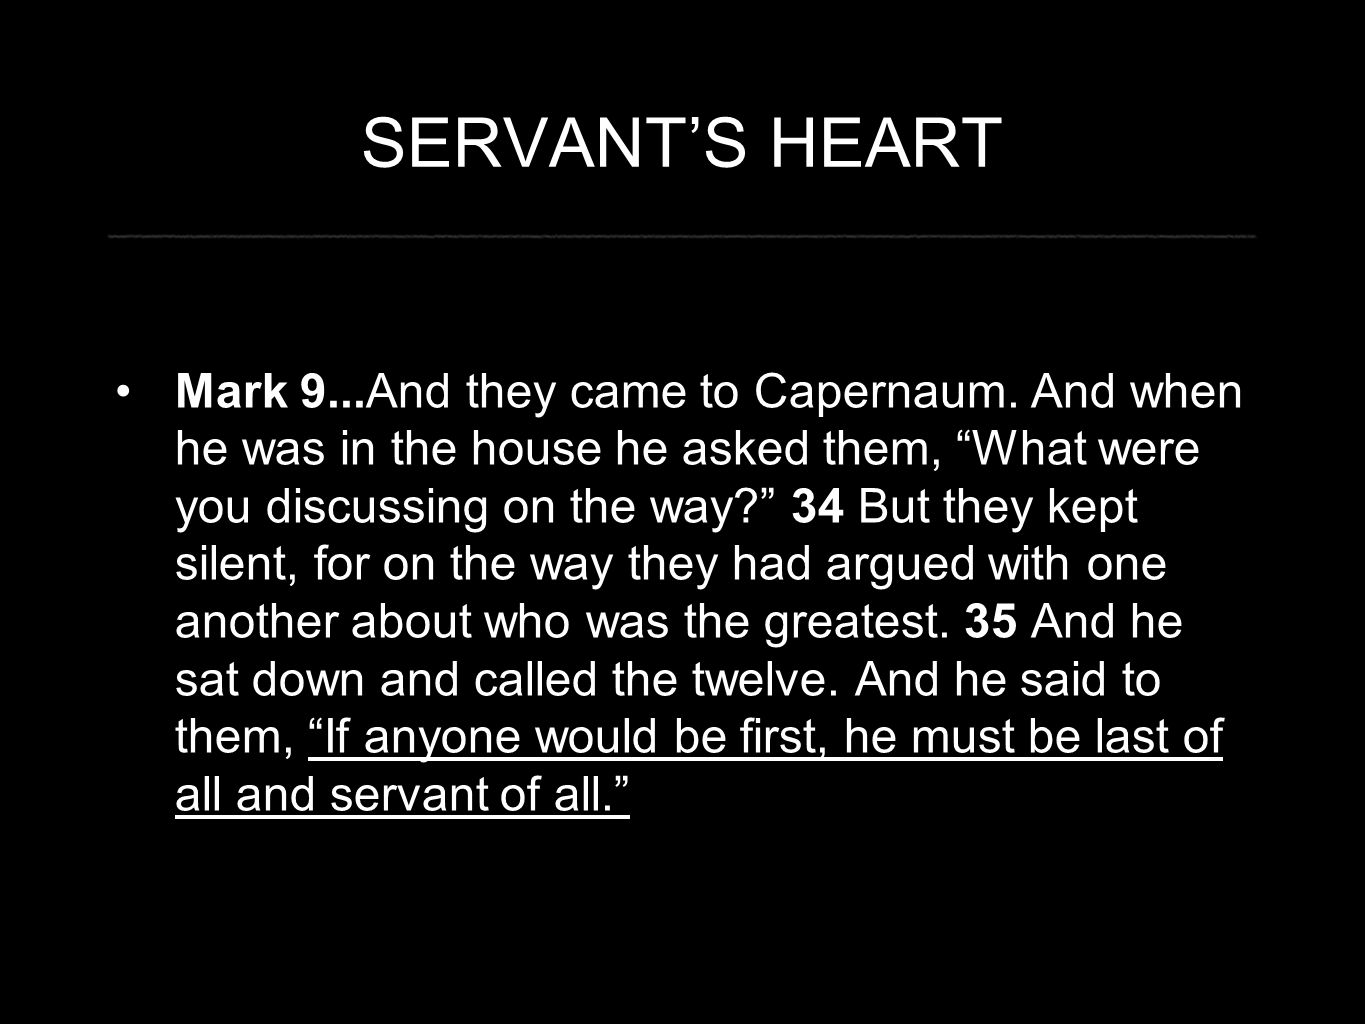 SERVANT'S HEART Mark 9...And they came to Capernaum.